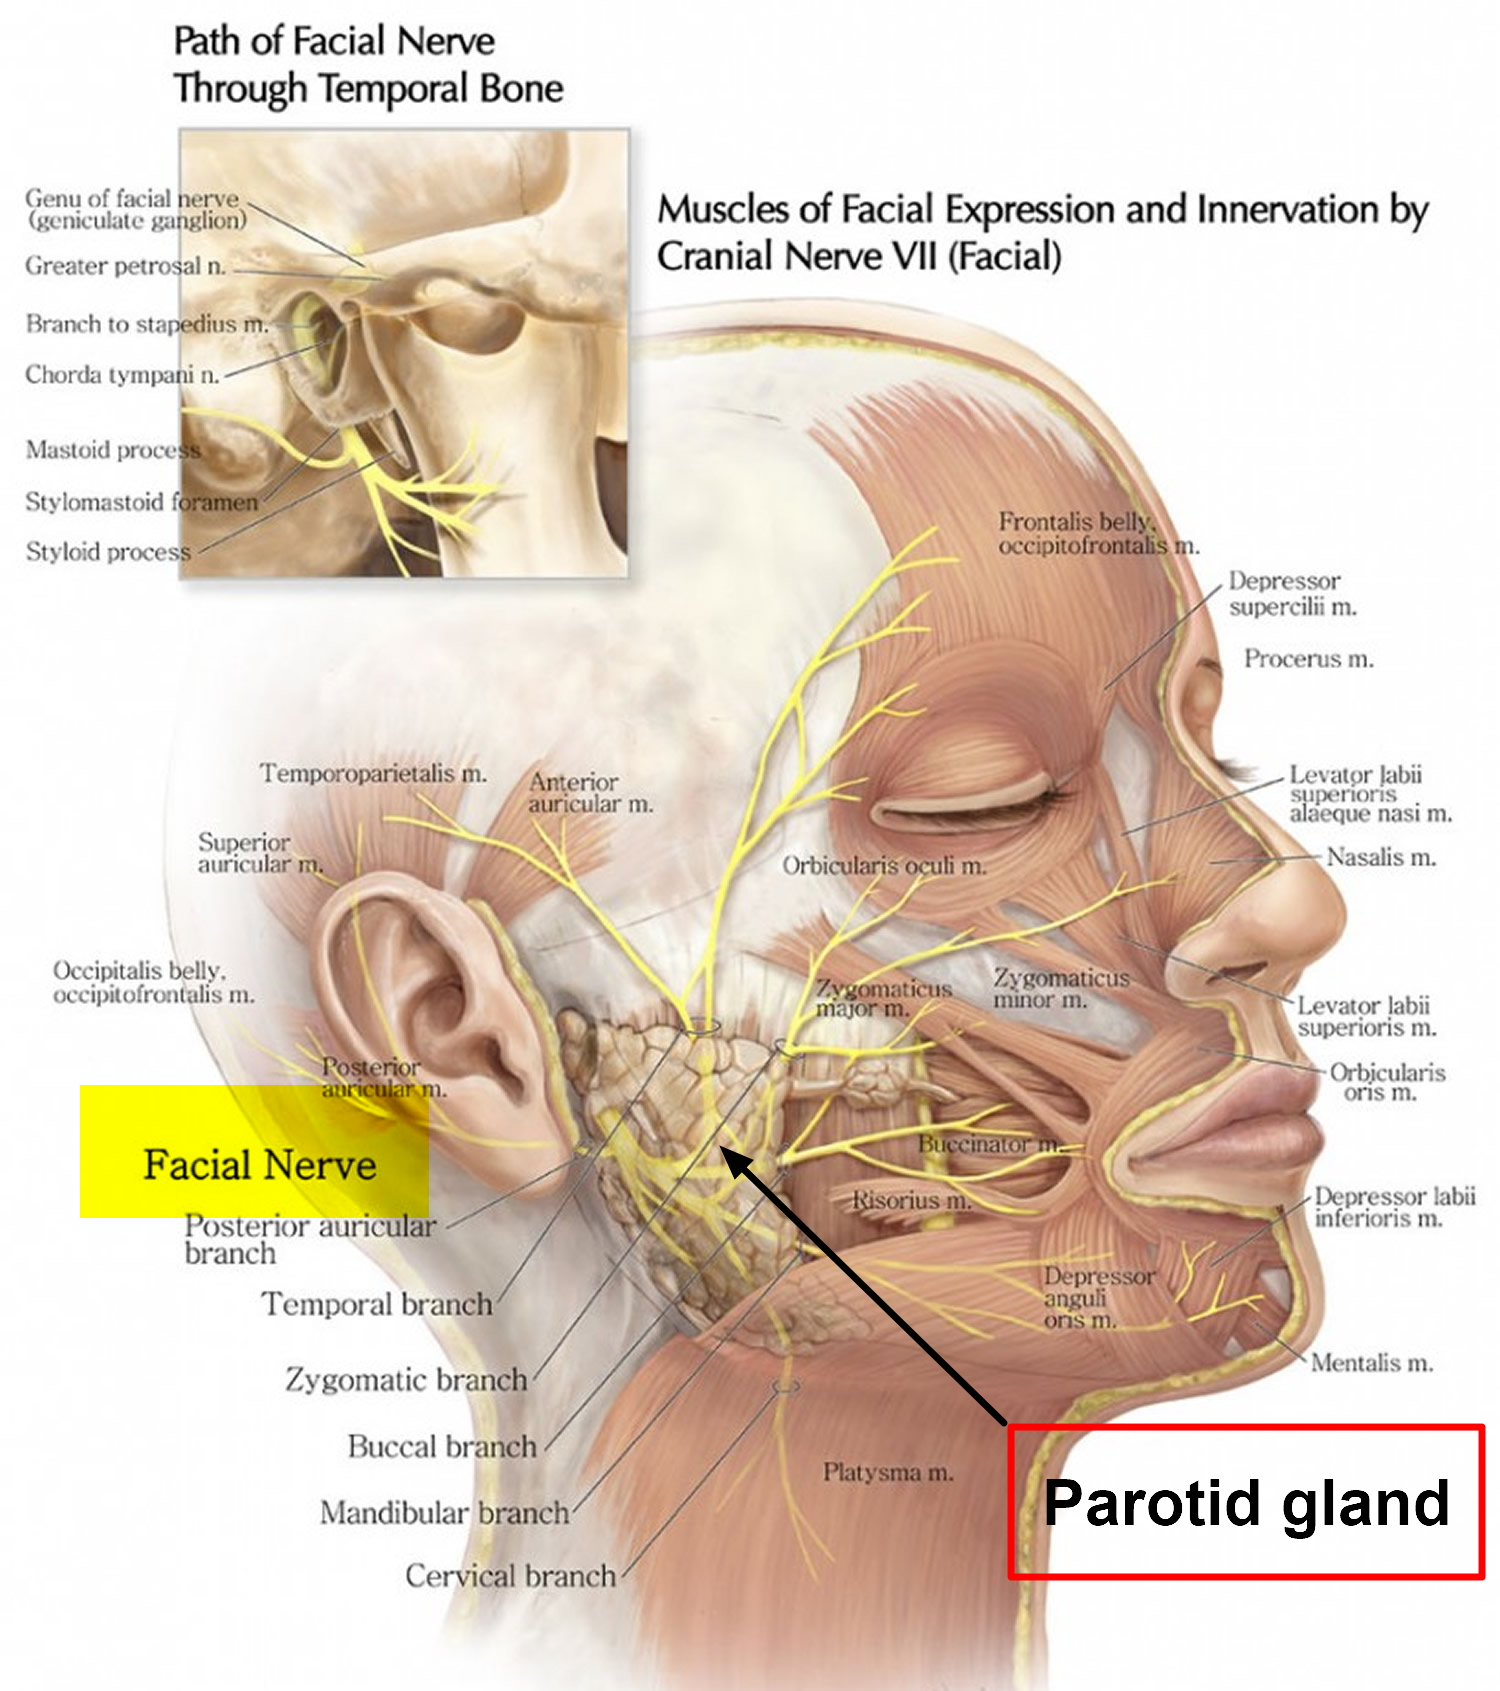 Parotidectomy and facial